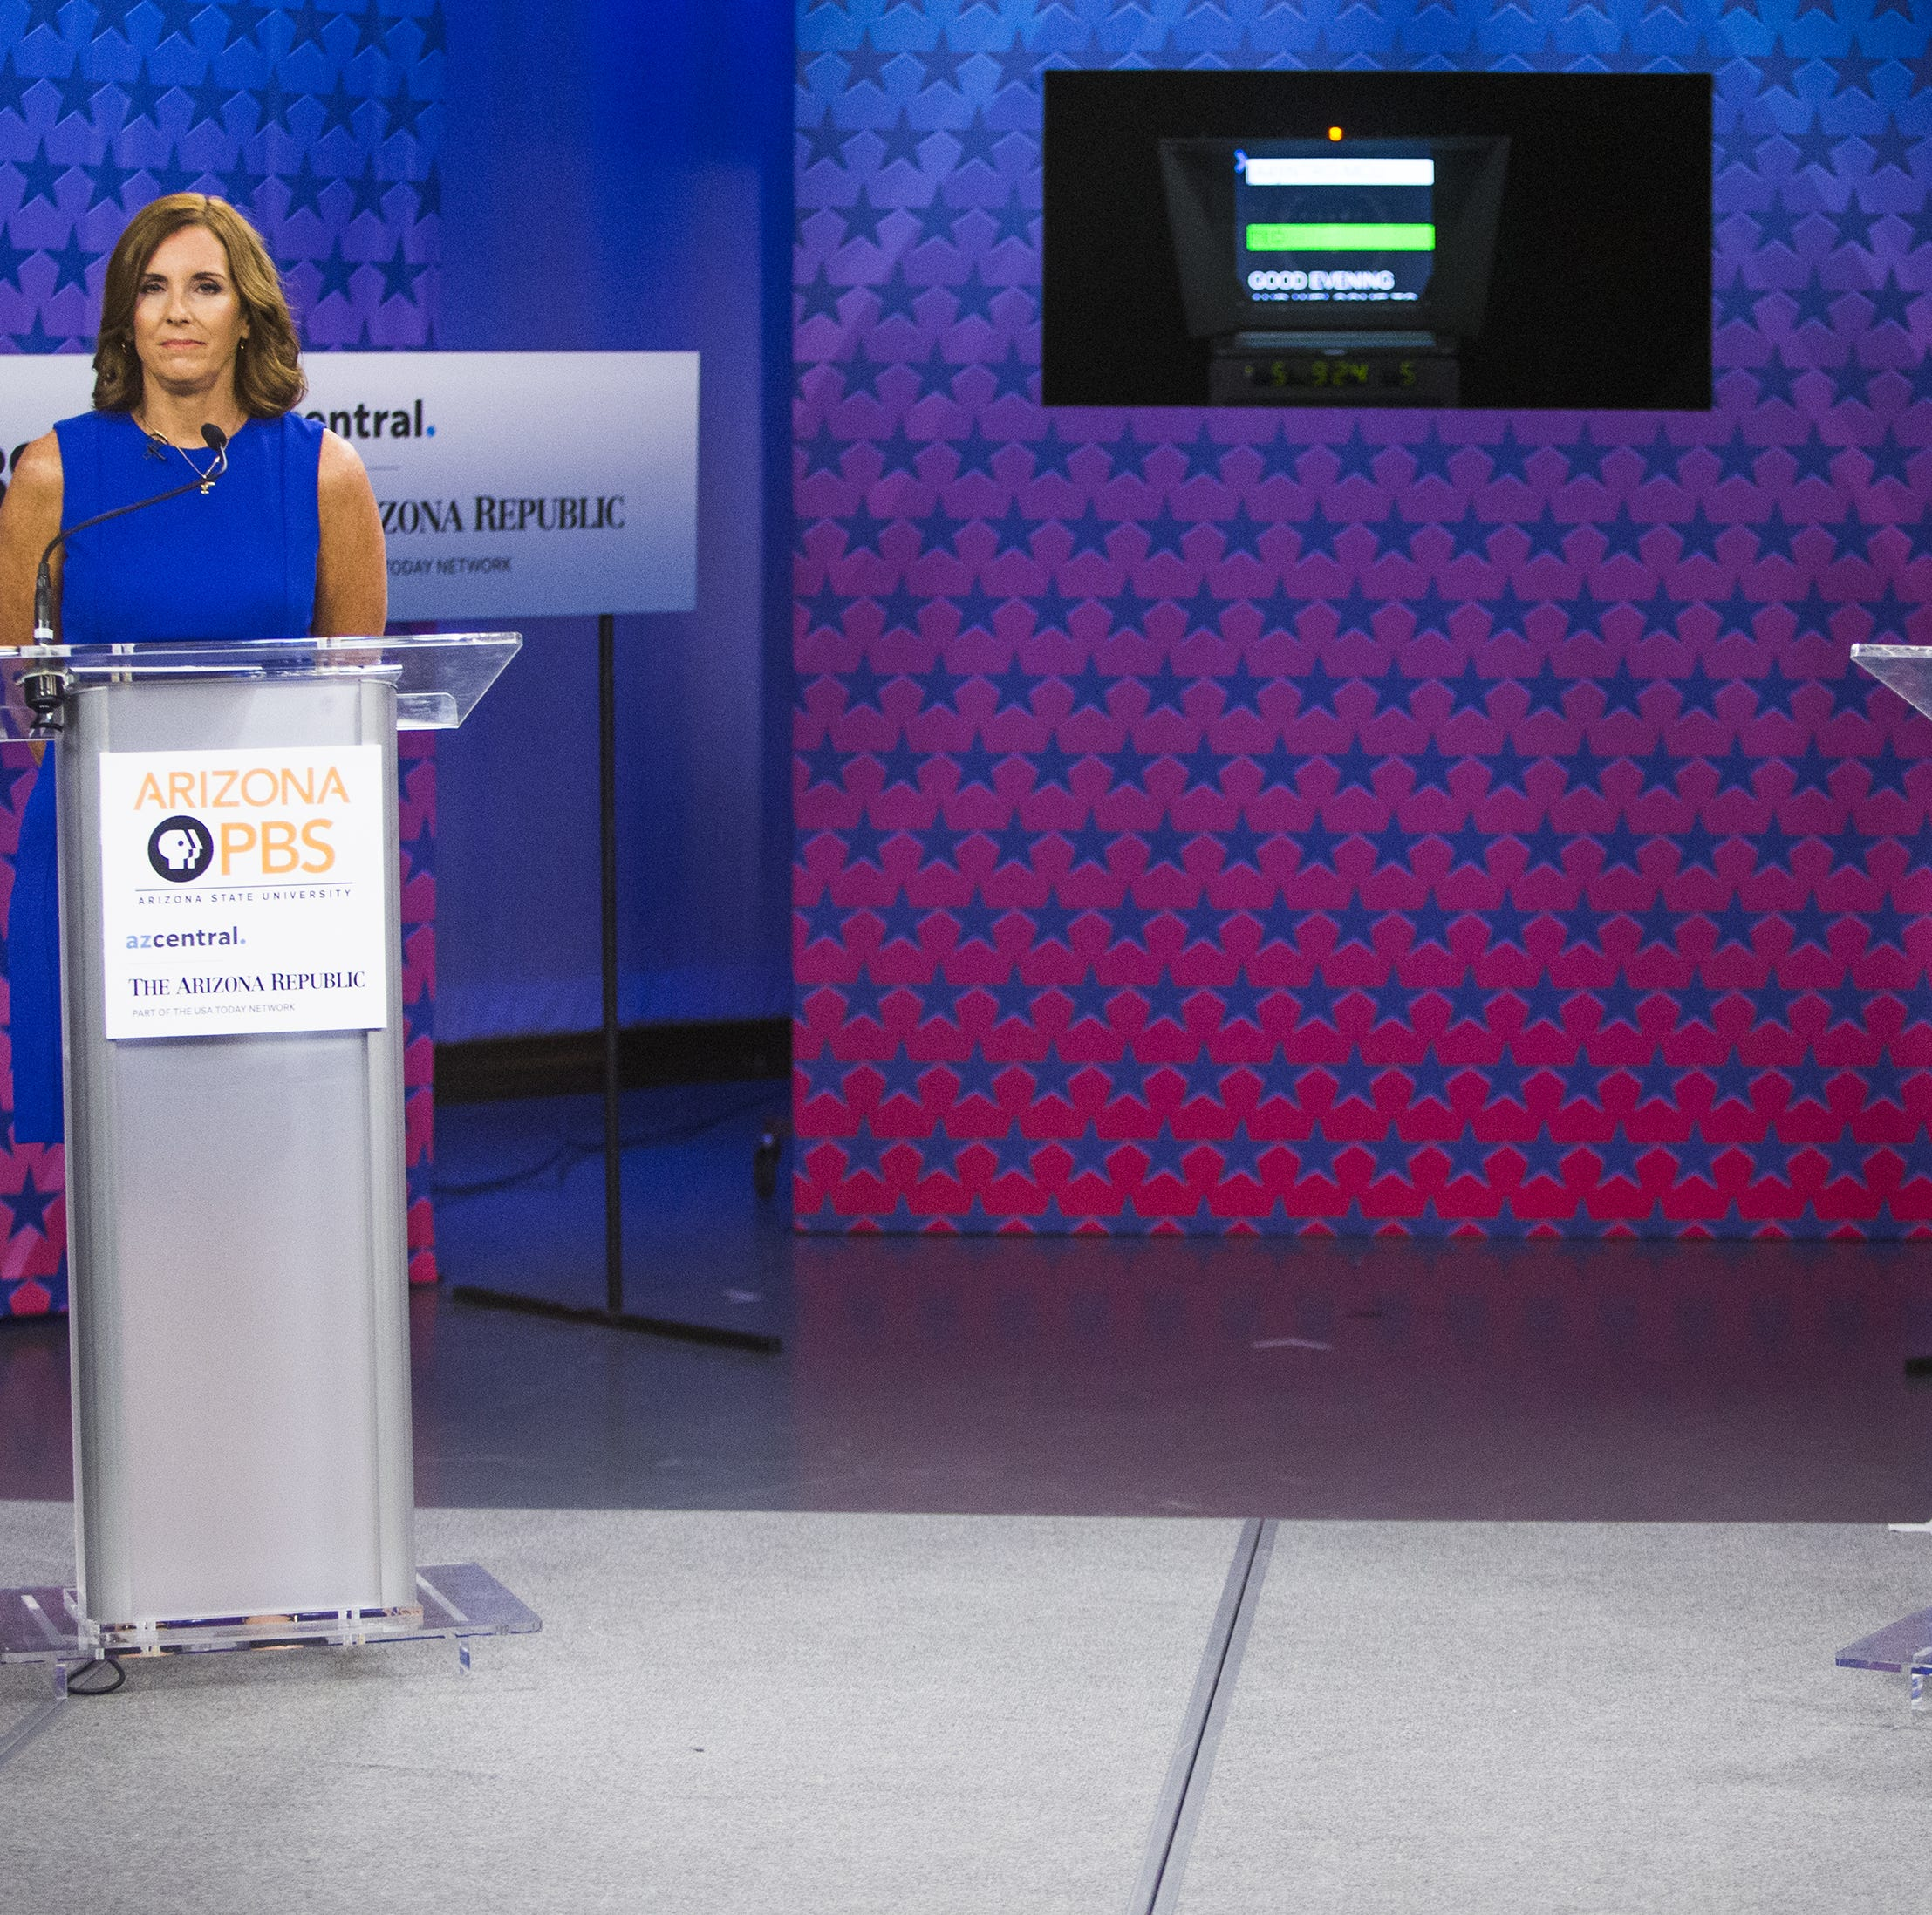 Martha McSally vs. Kyrsten Sinema: Fact-checking Arizona's U.S. Senate debate